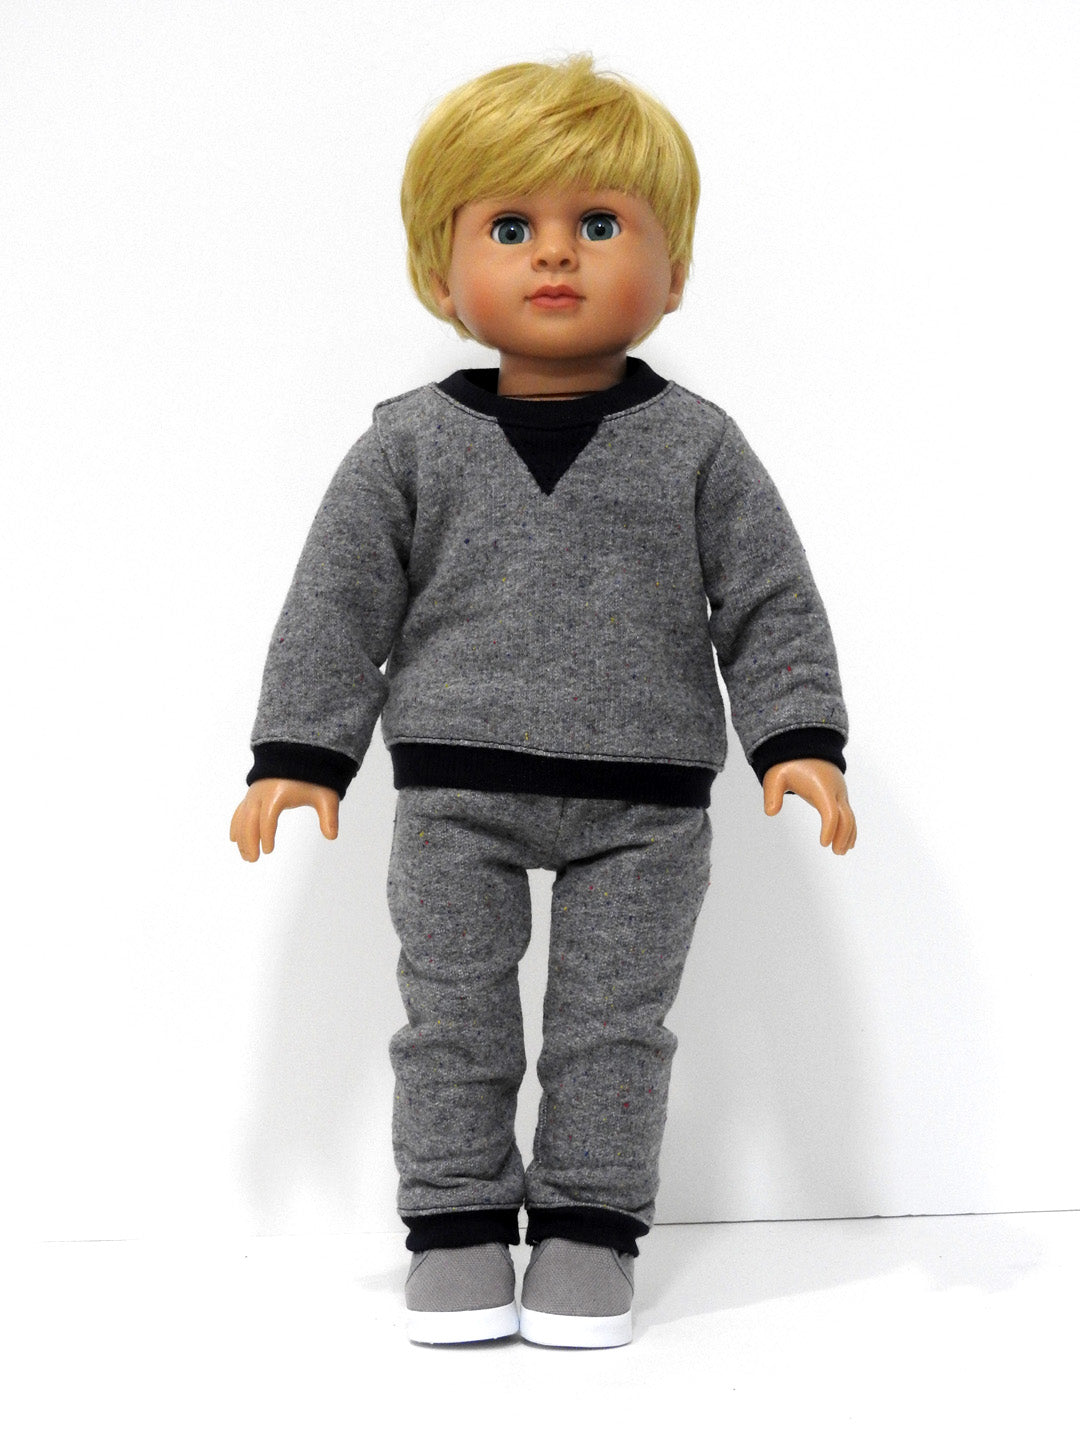 18 Inch Boy Doll Handmade Sweatshirt and Jogging Pants